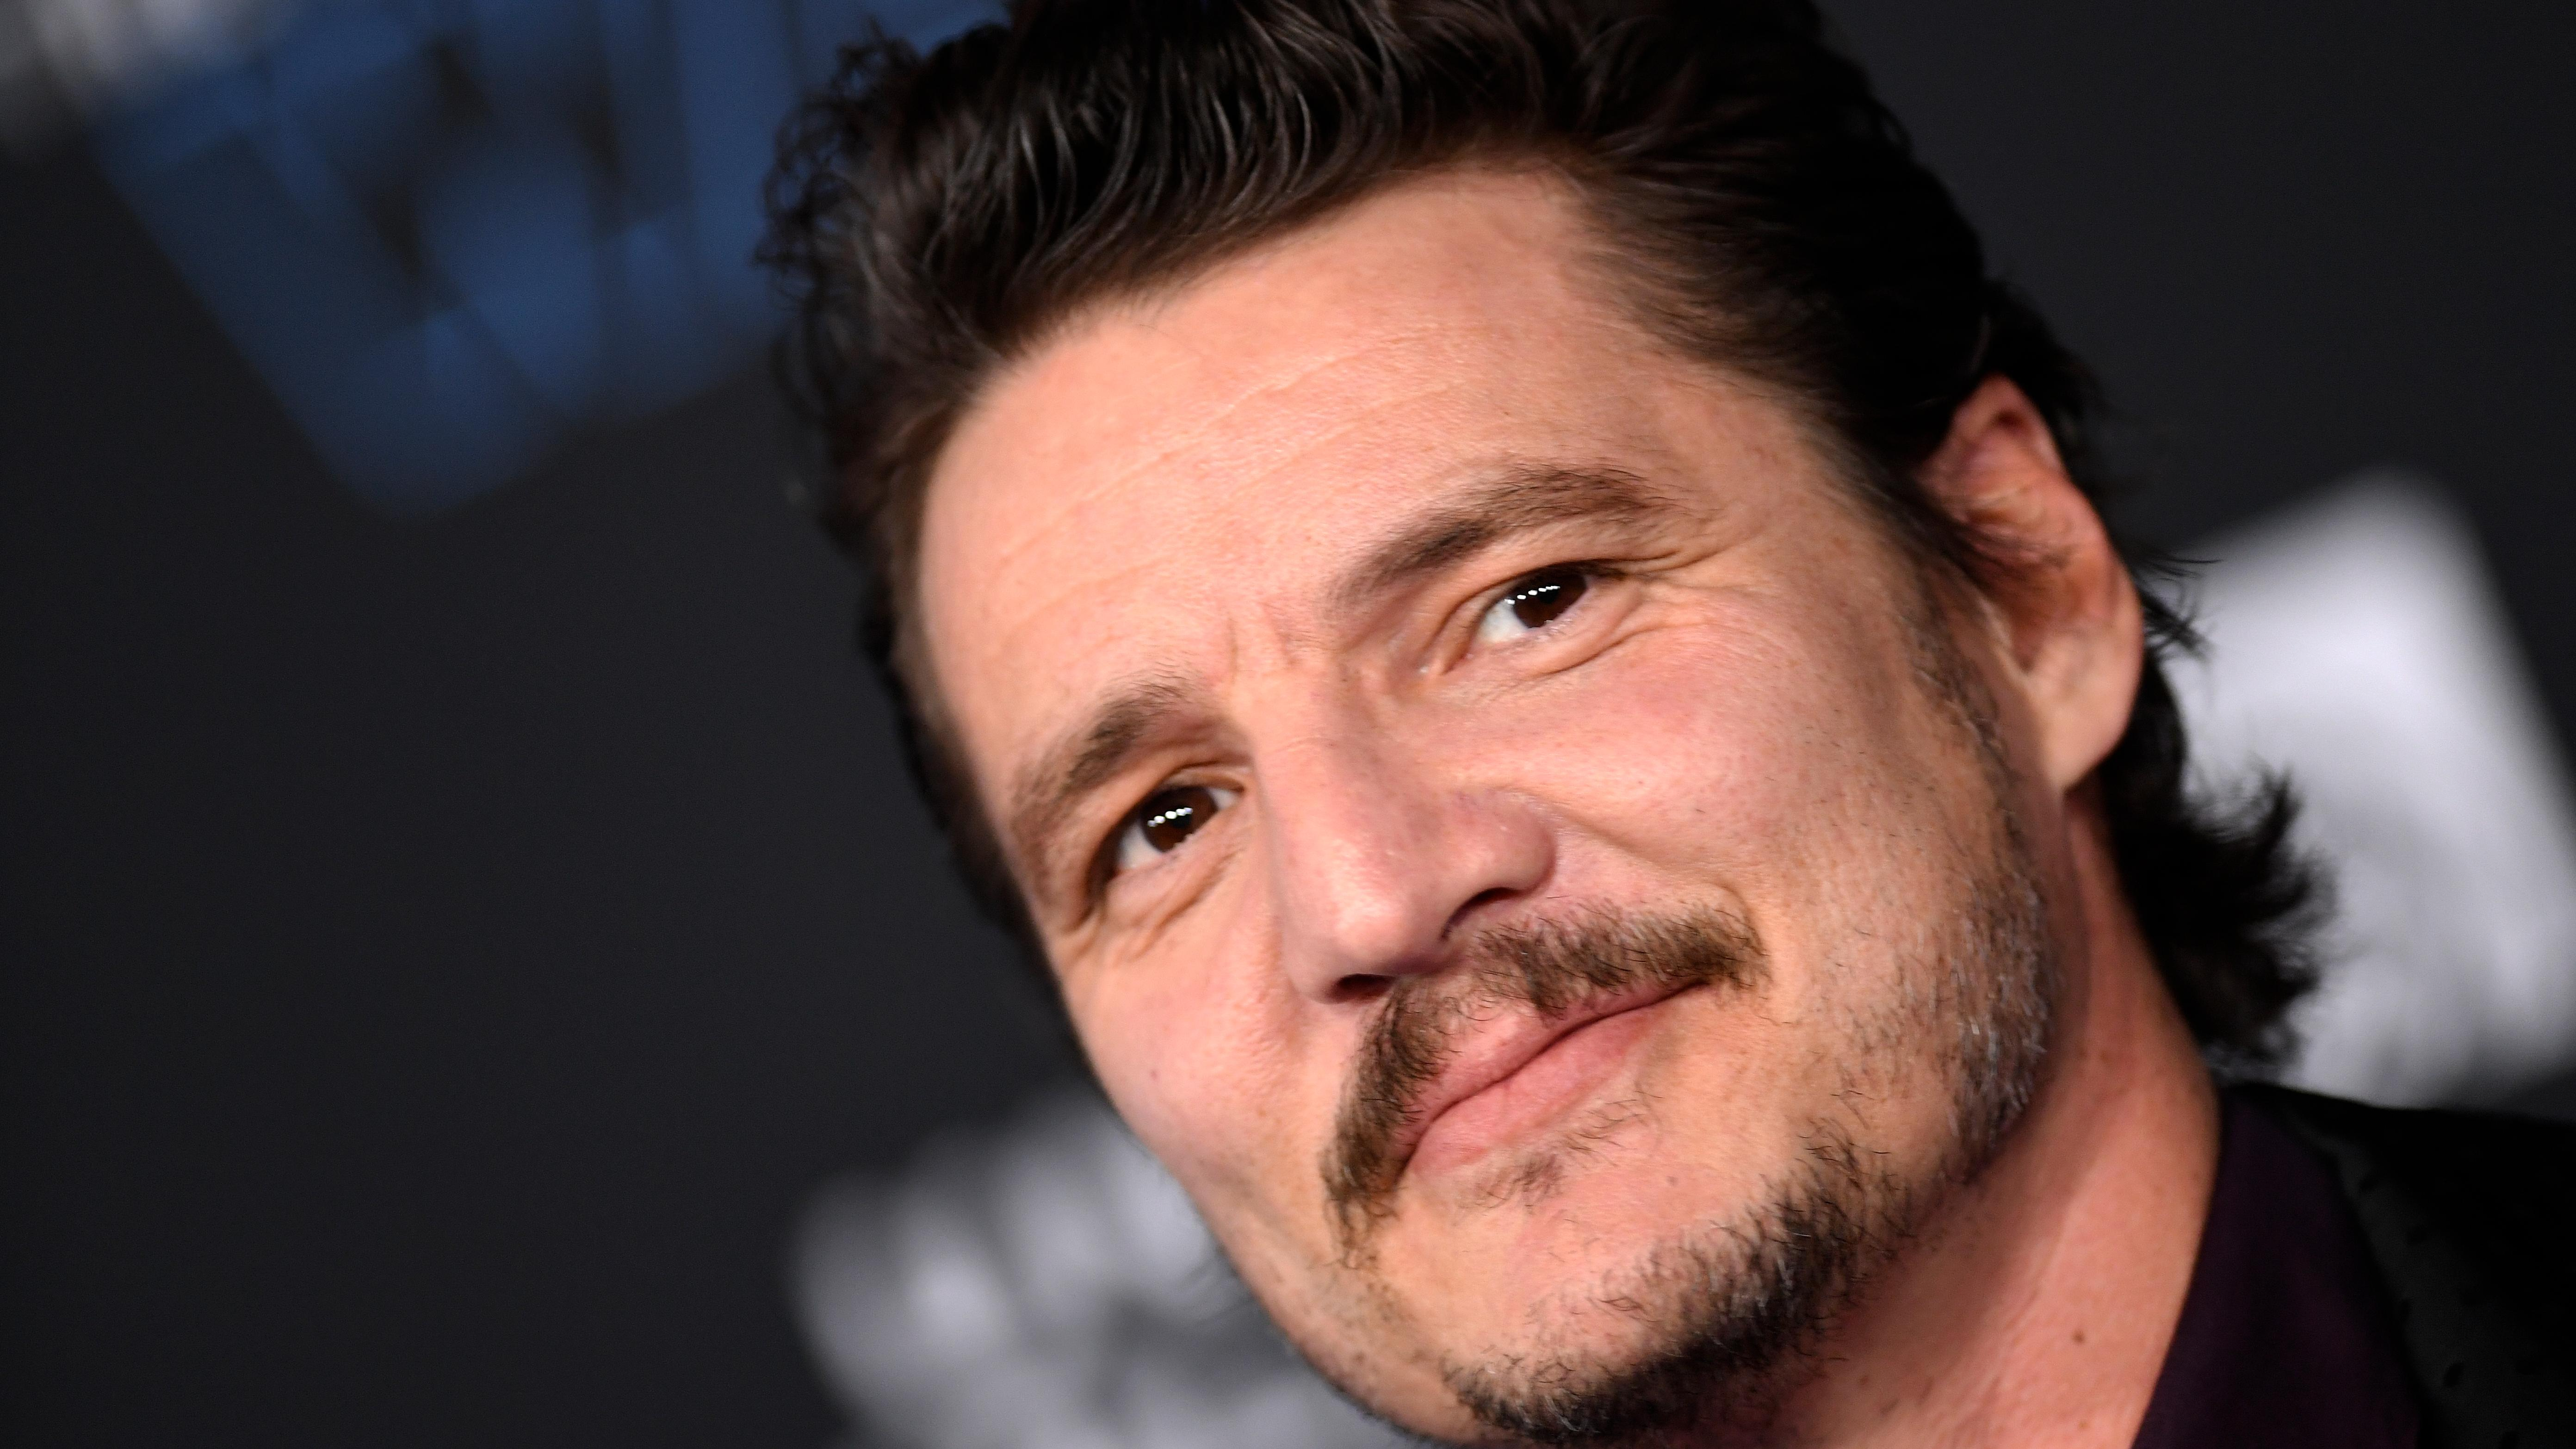 The rise and rise of Pedro Pascal